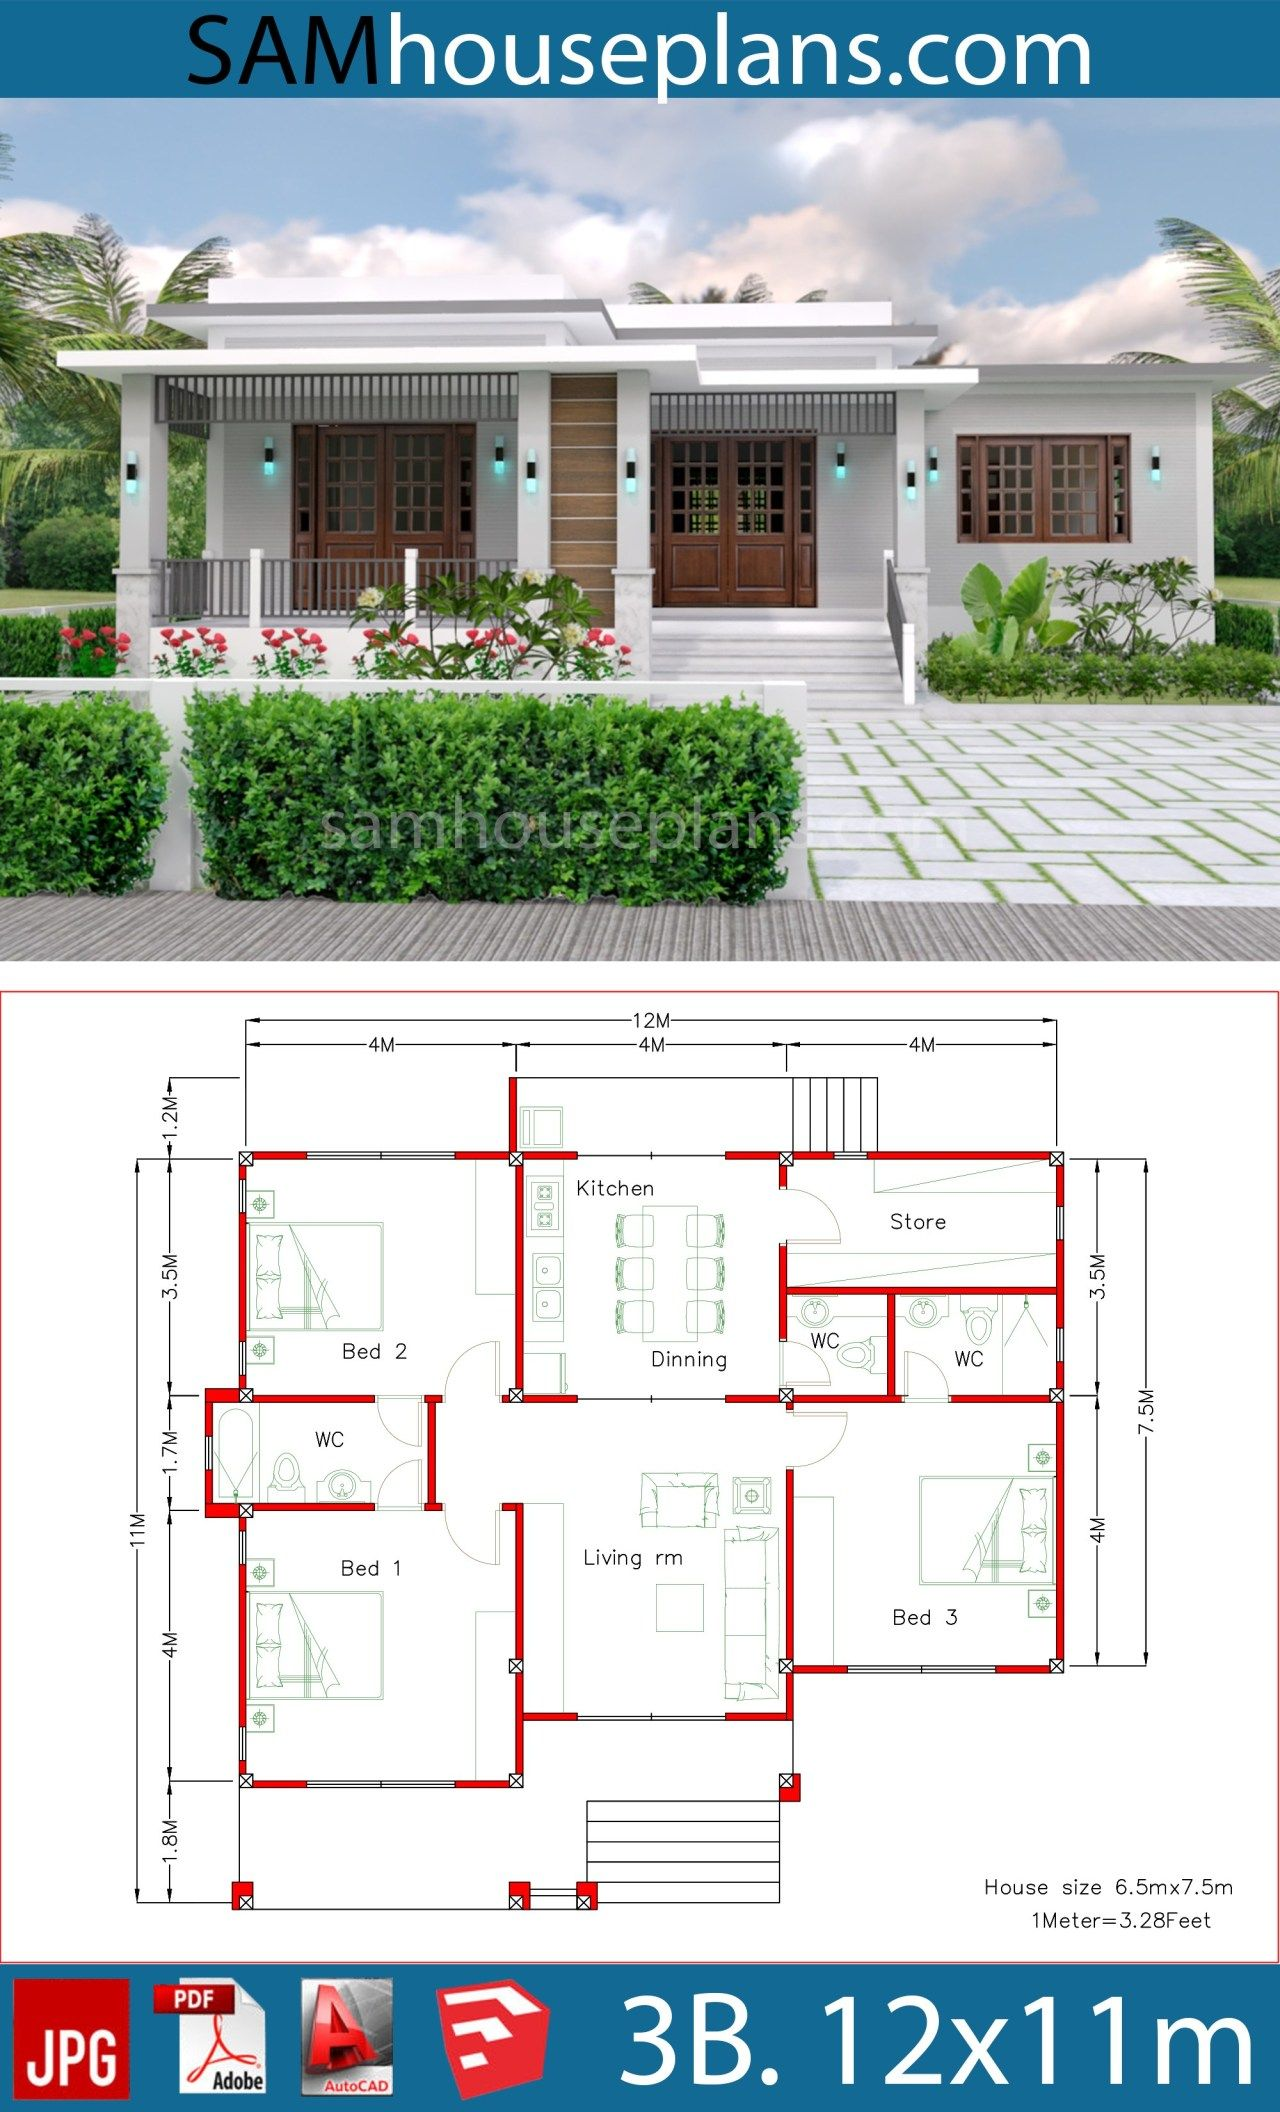 House Plans 12x11m With 3 Bedrooms Sam House Plans Village House Design Architectural House Plans House Construction Plan